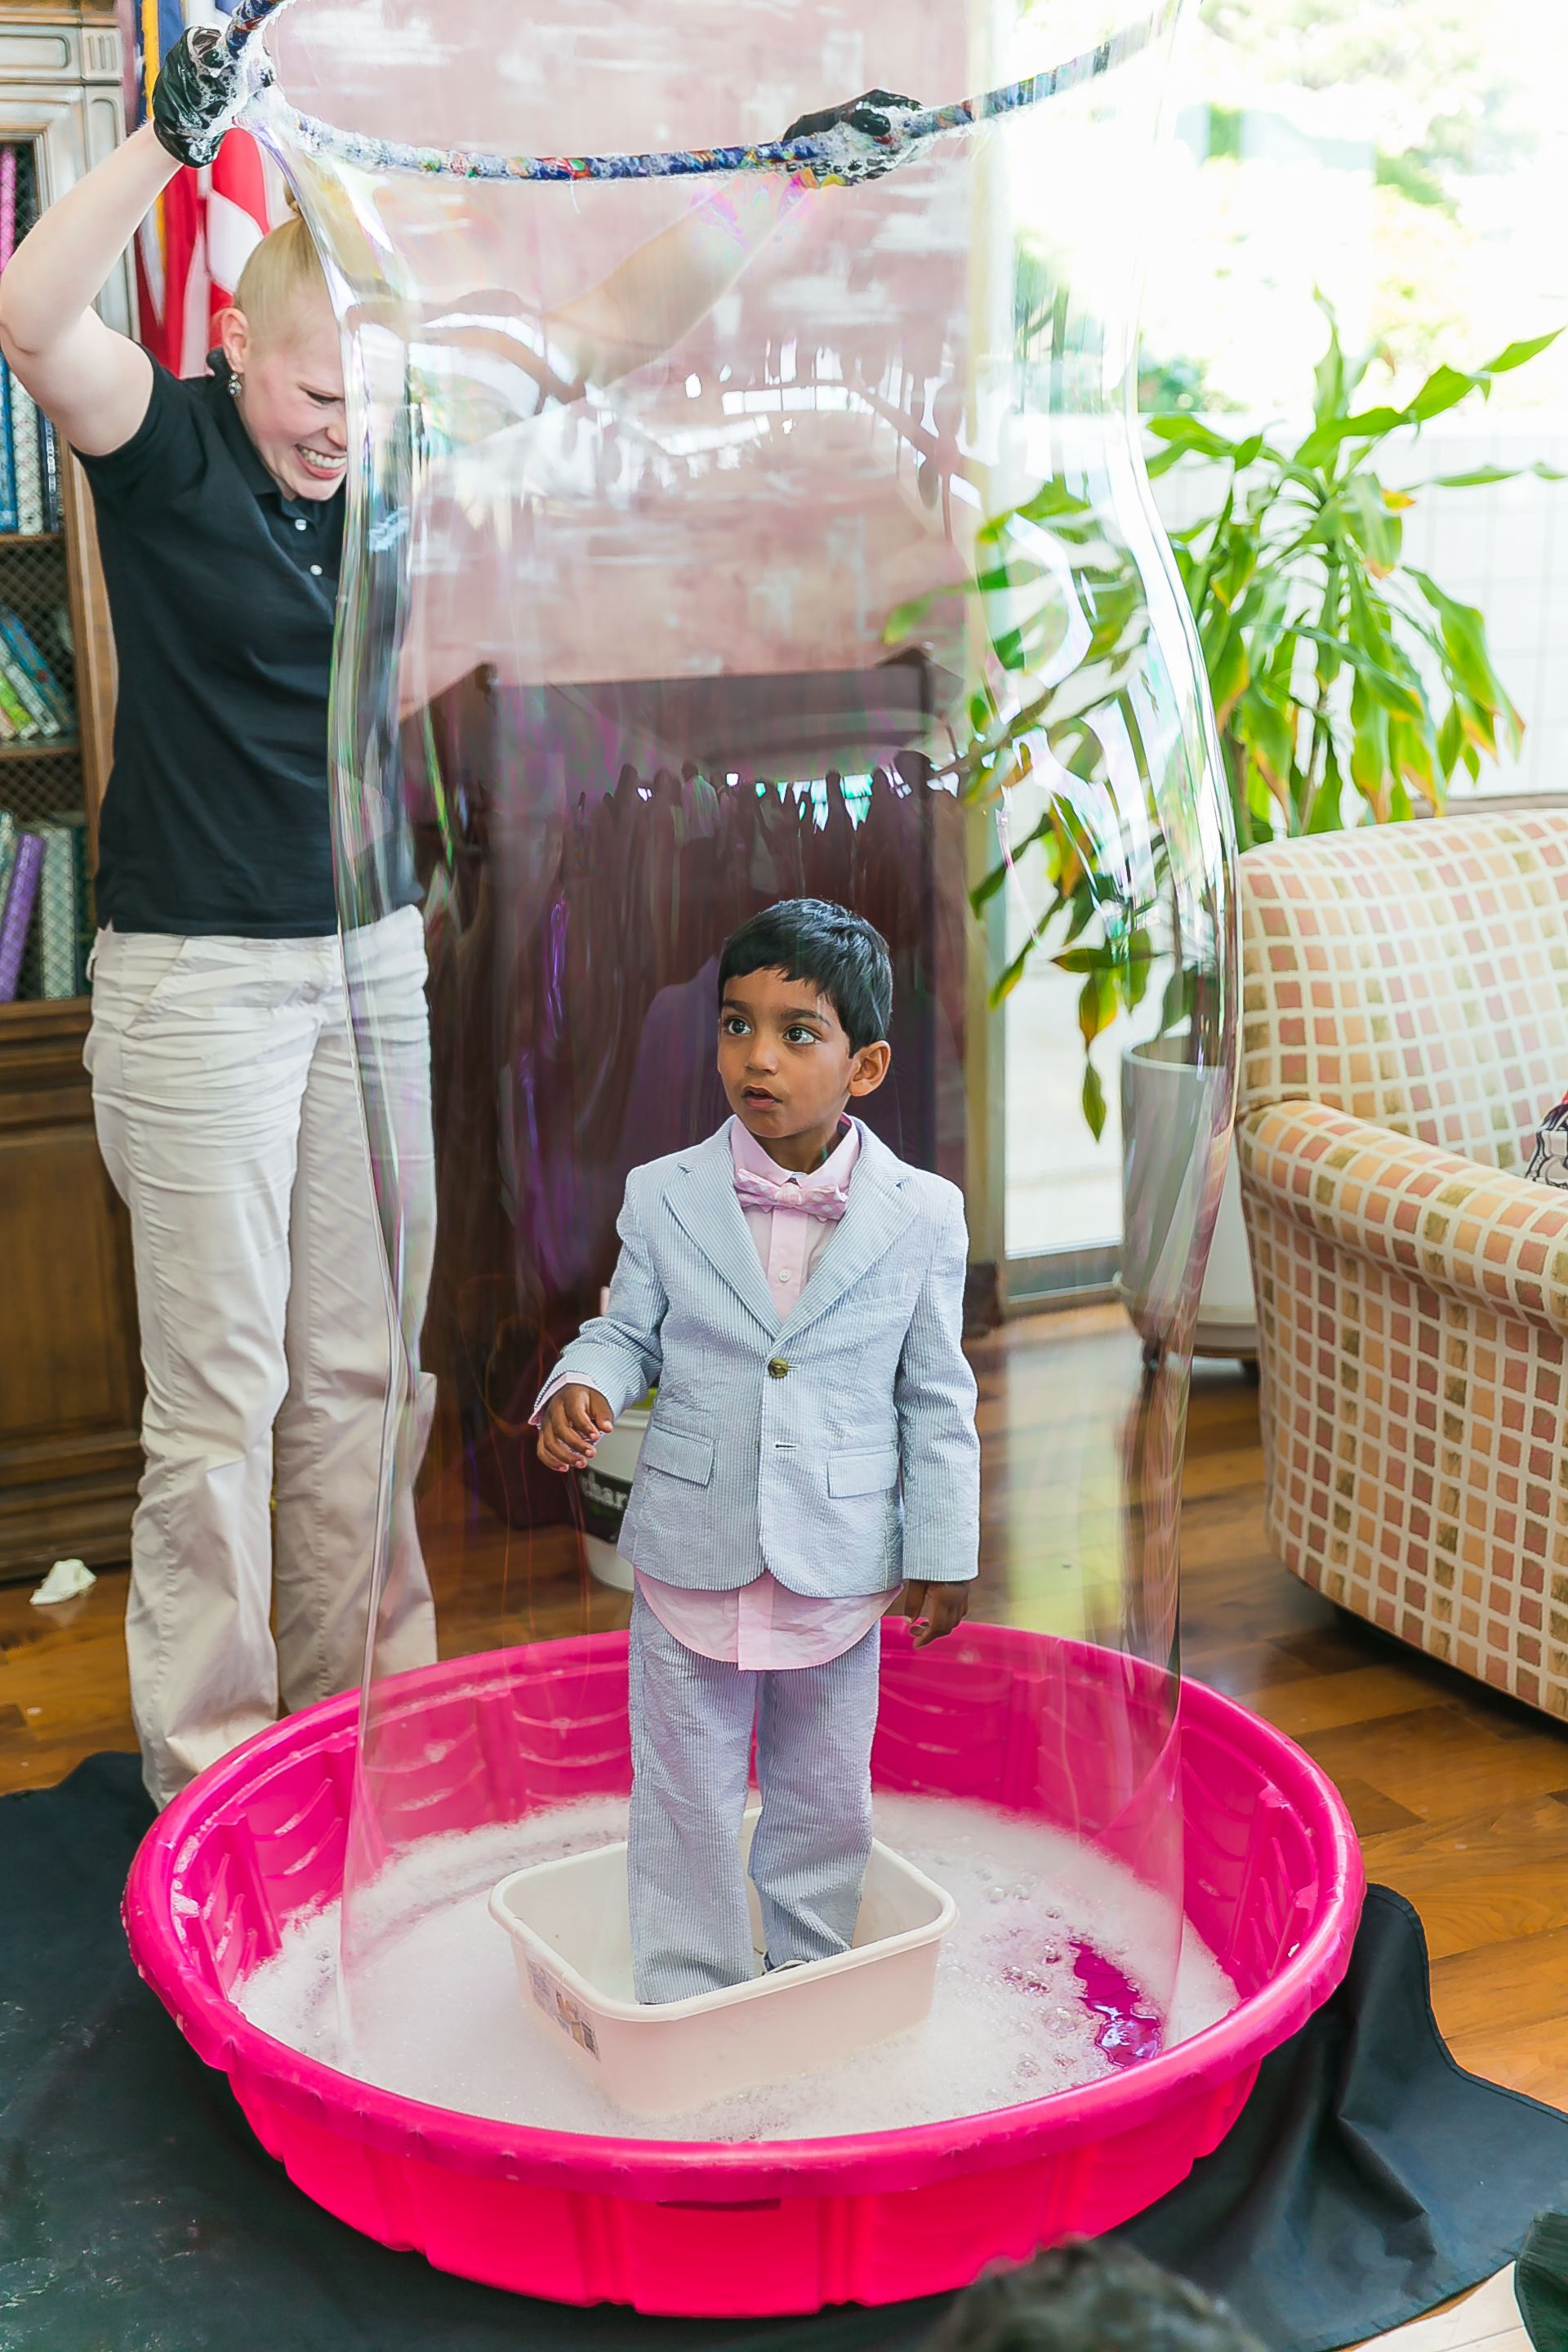 Project Nursery - Giant Bubble Kid's Party Activity